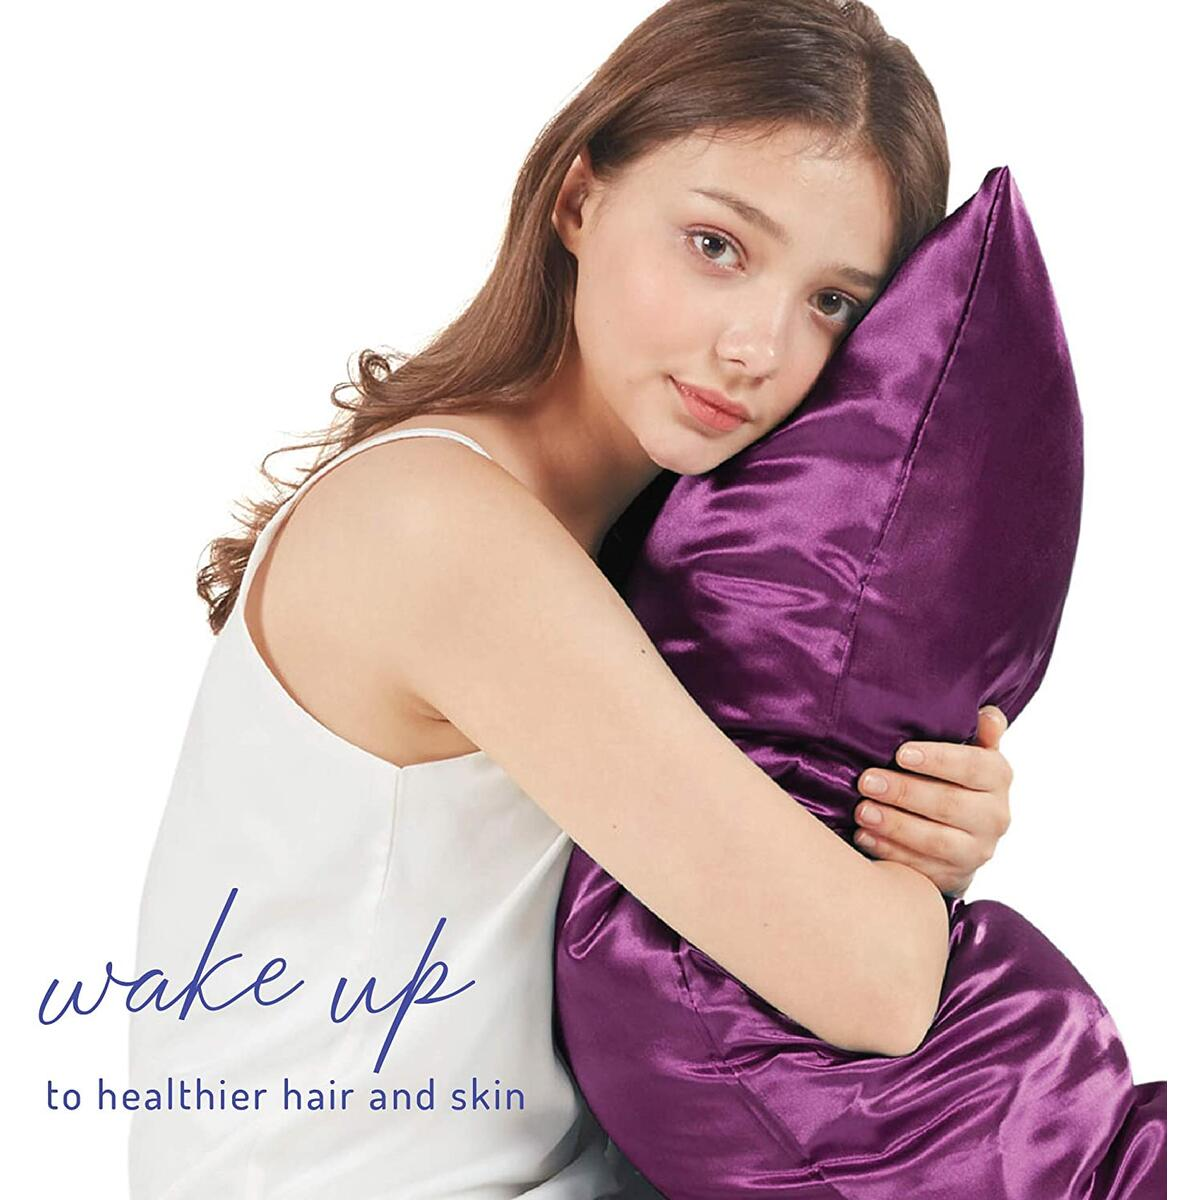 Satin Purple Pillow Cases Standard Size Set of 2, 20 x 26 - Reduce Irritation & Frizzy | Satin Weave Cover for Silky Comfort | Retains Color in Easy Machine Wash & Dry